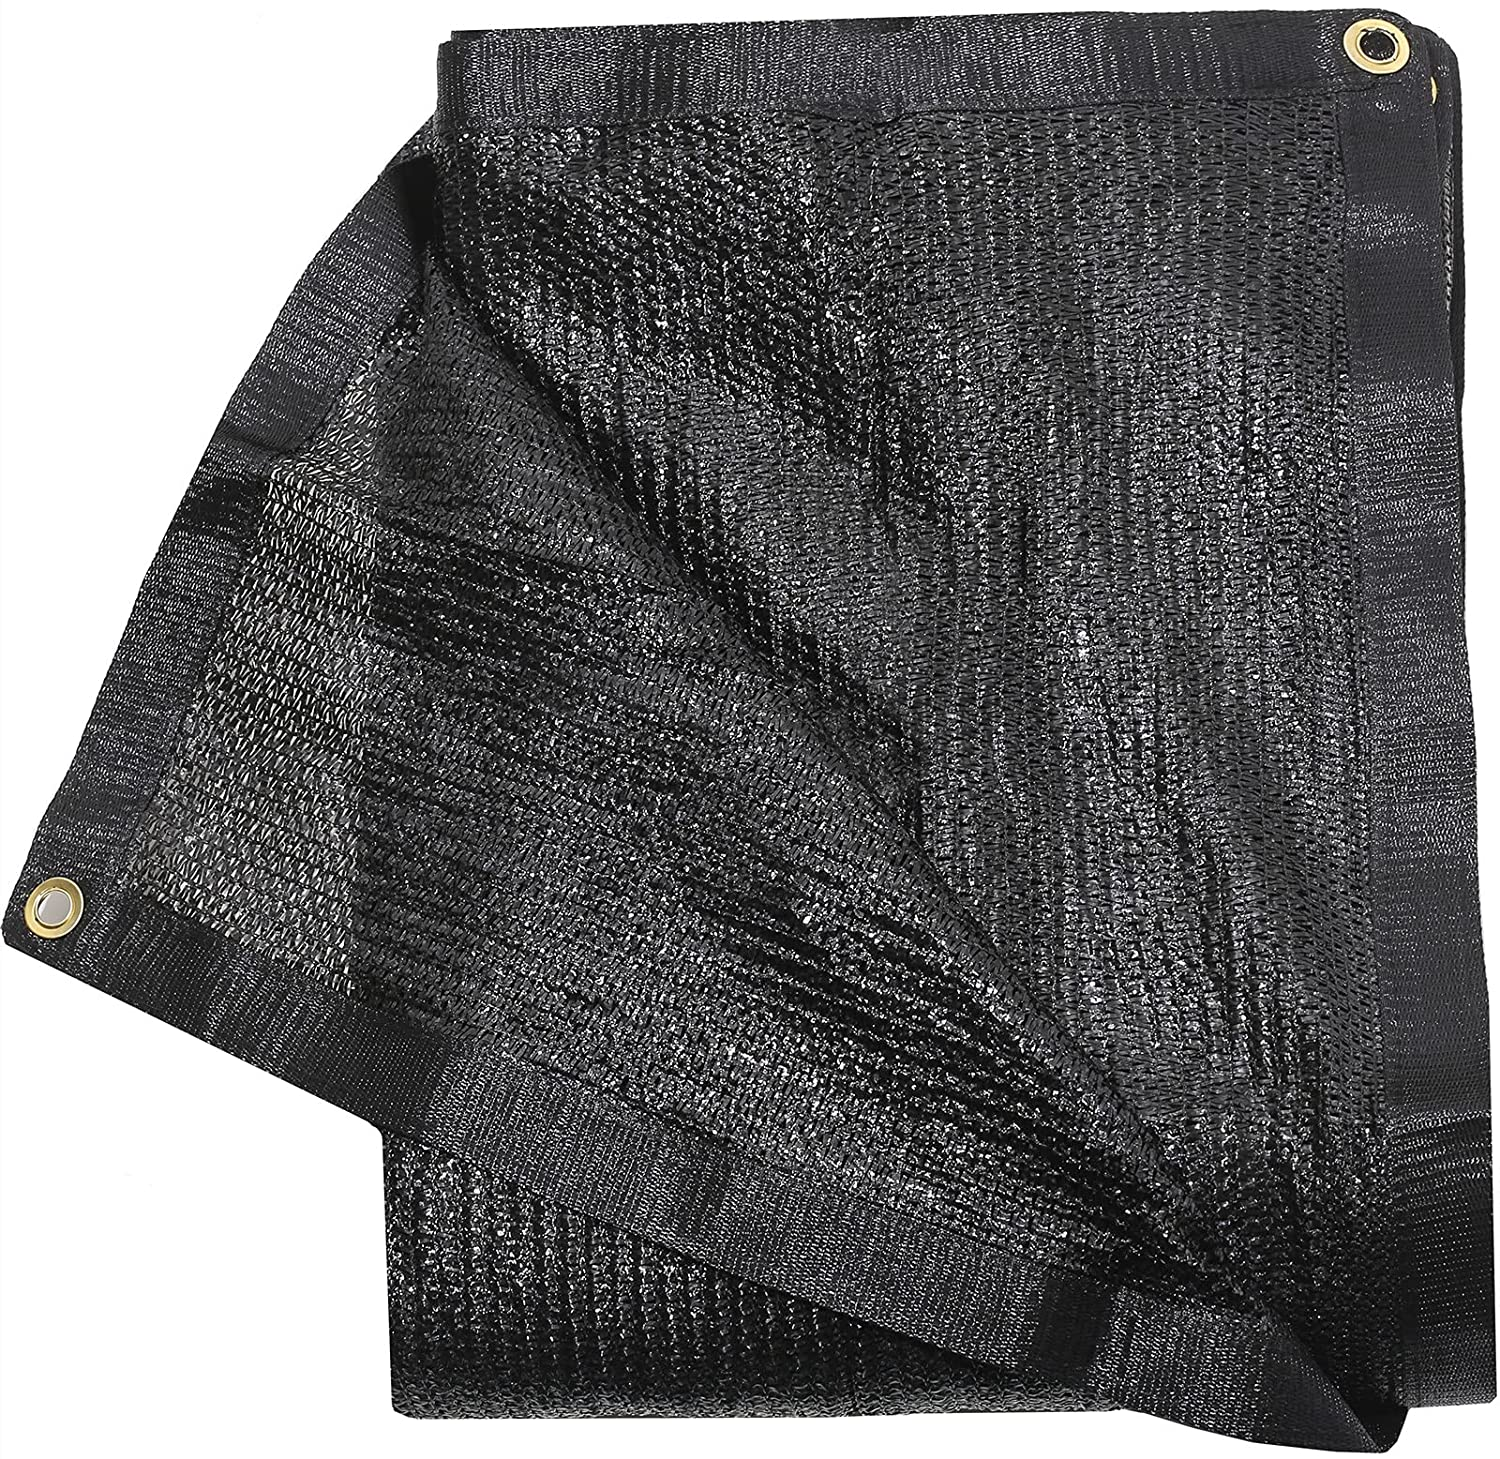 50% Black Shade Cloth Taped Edge with Grommets 8 ft X 12 ft Shade Fabric Sun Net Mesh for Pergola Patio Backyard Garden Shade Panel